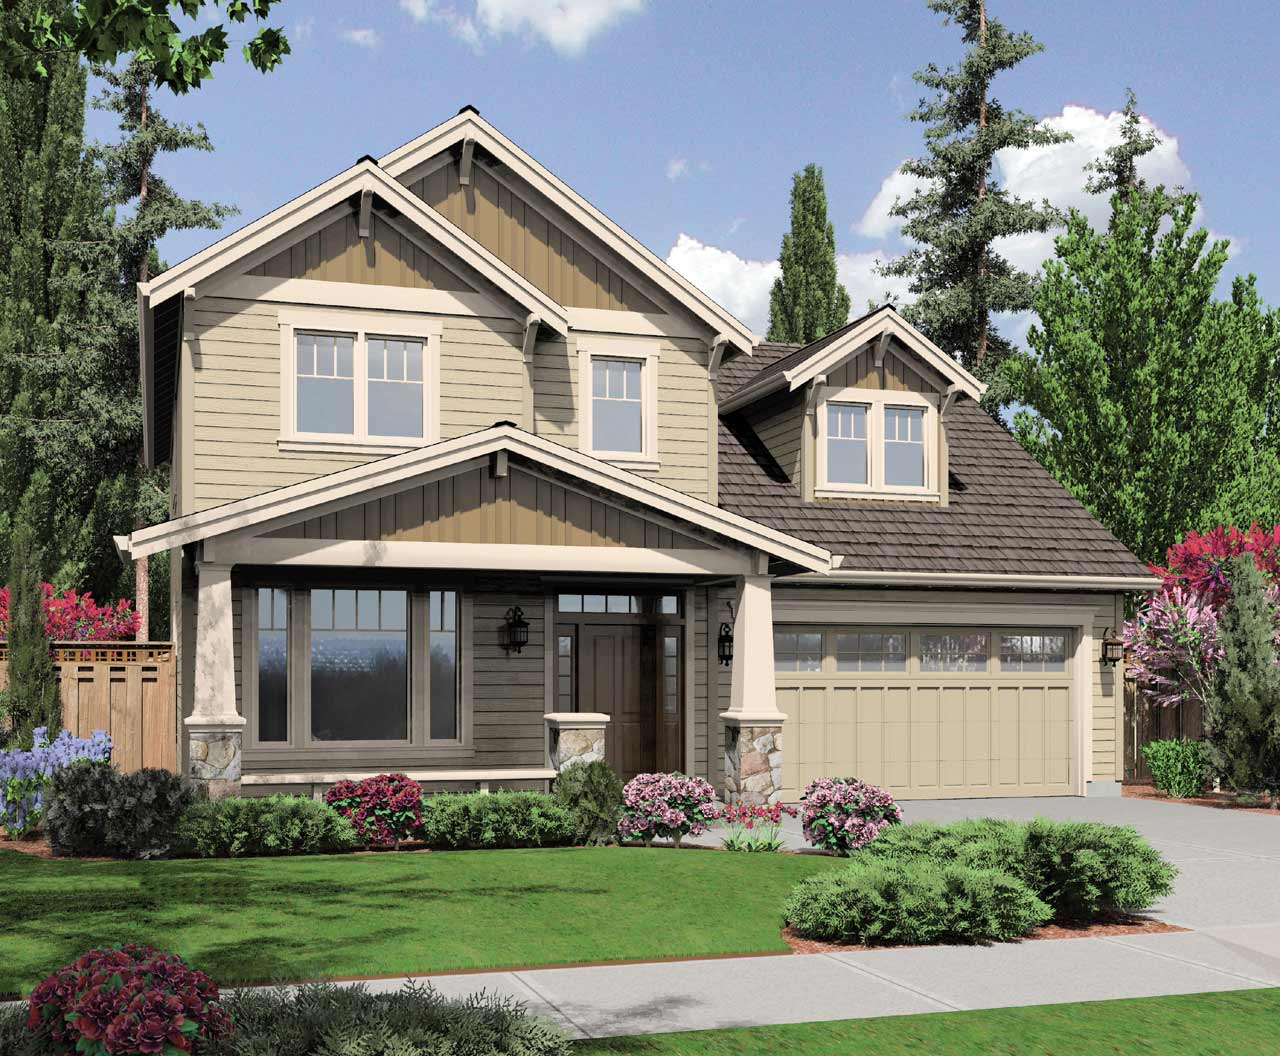 Craftsman Style Home Design 74-273